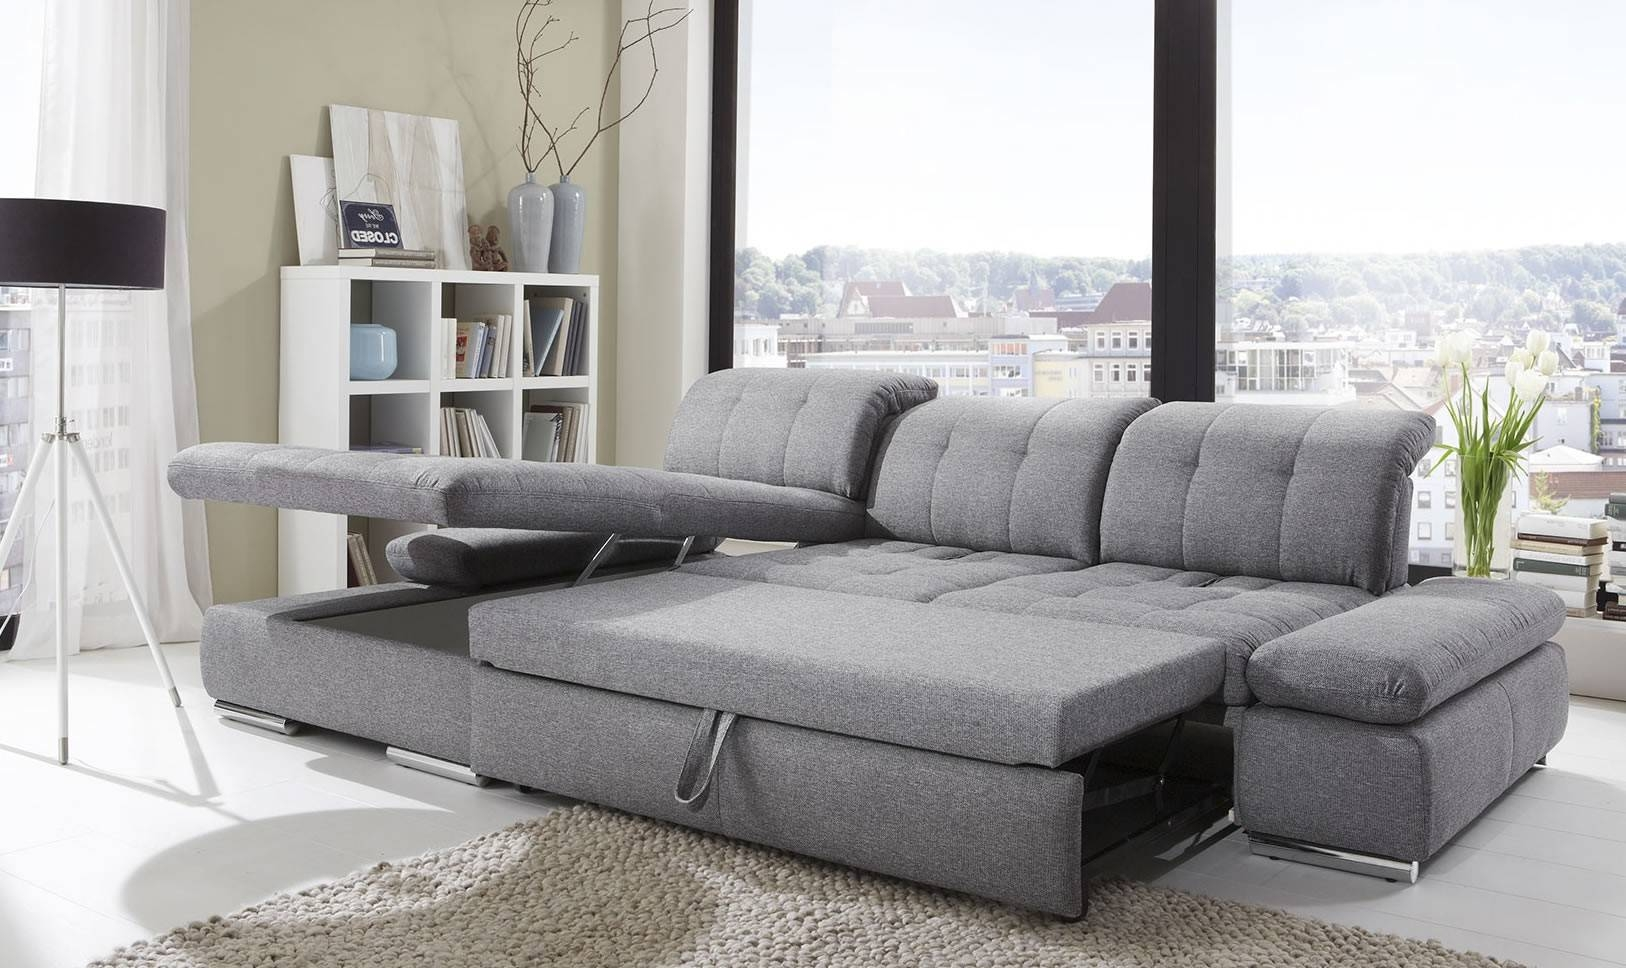 Sectional Queen Sleeper Sofa Bed | Latest Home Decor And Design throughout Sleeper Sofas San Diego (Image 16 of 25)